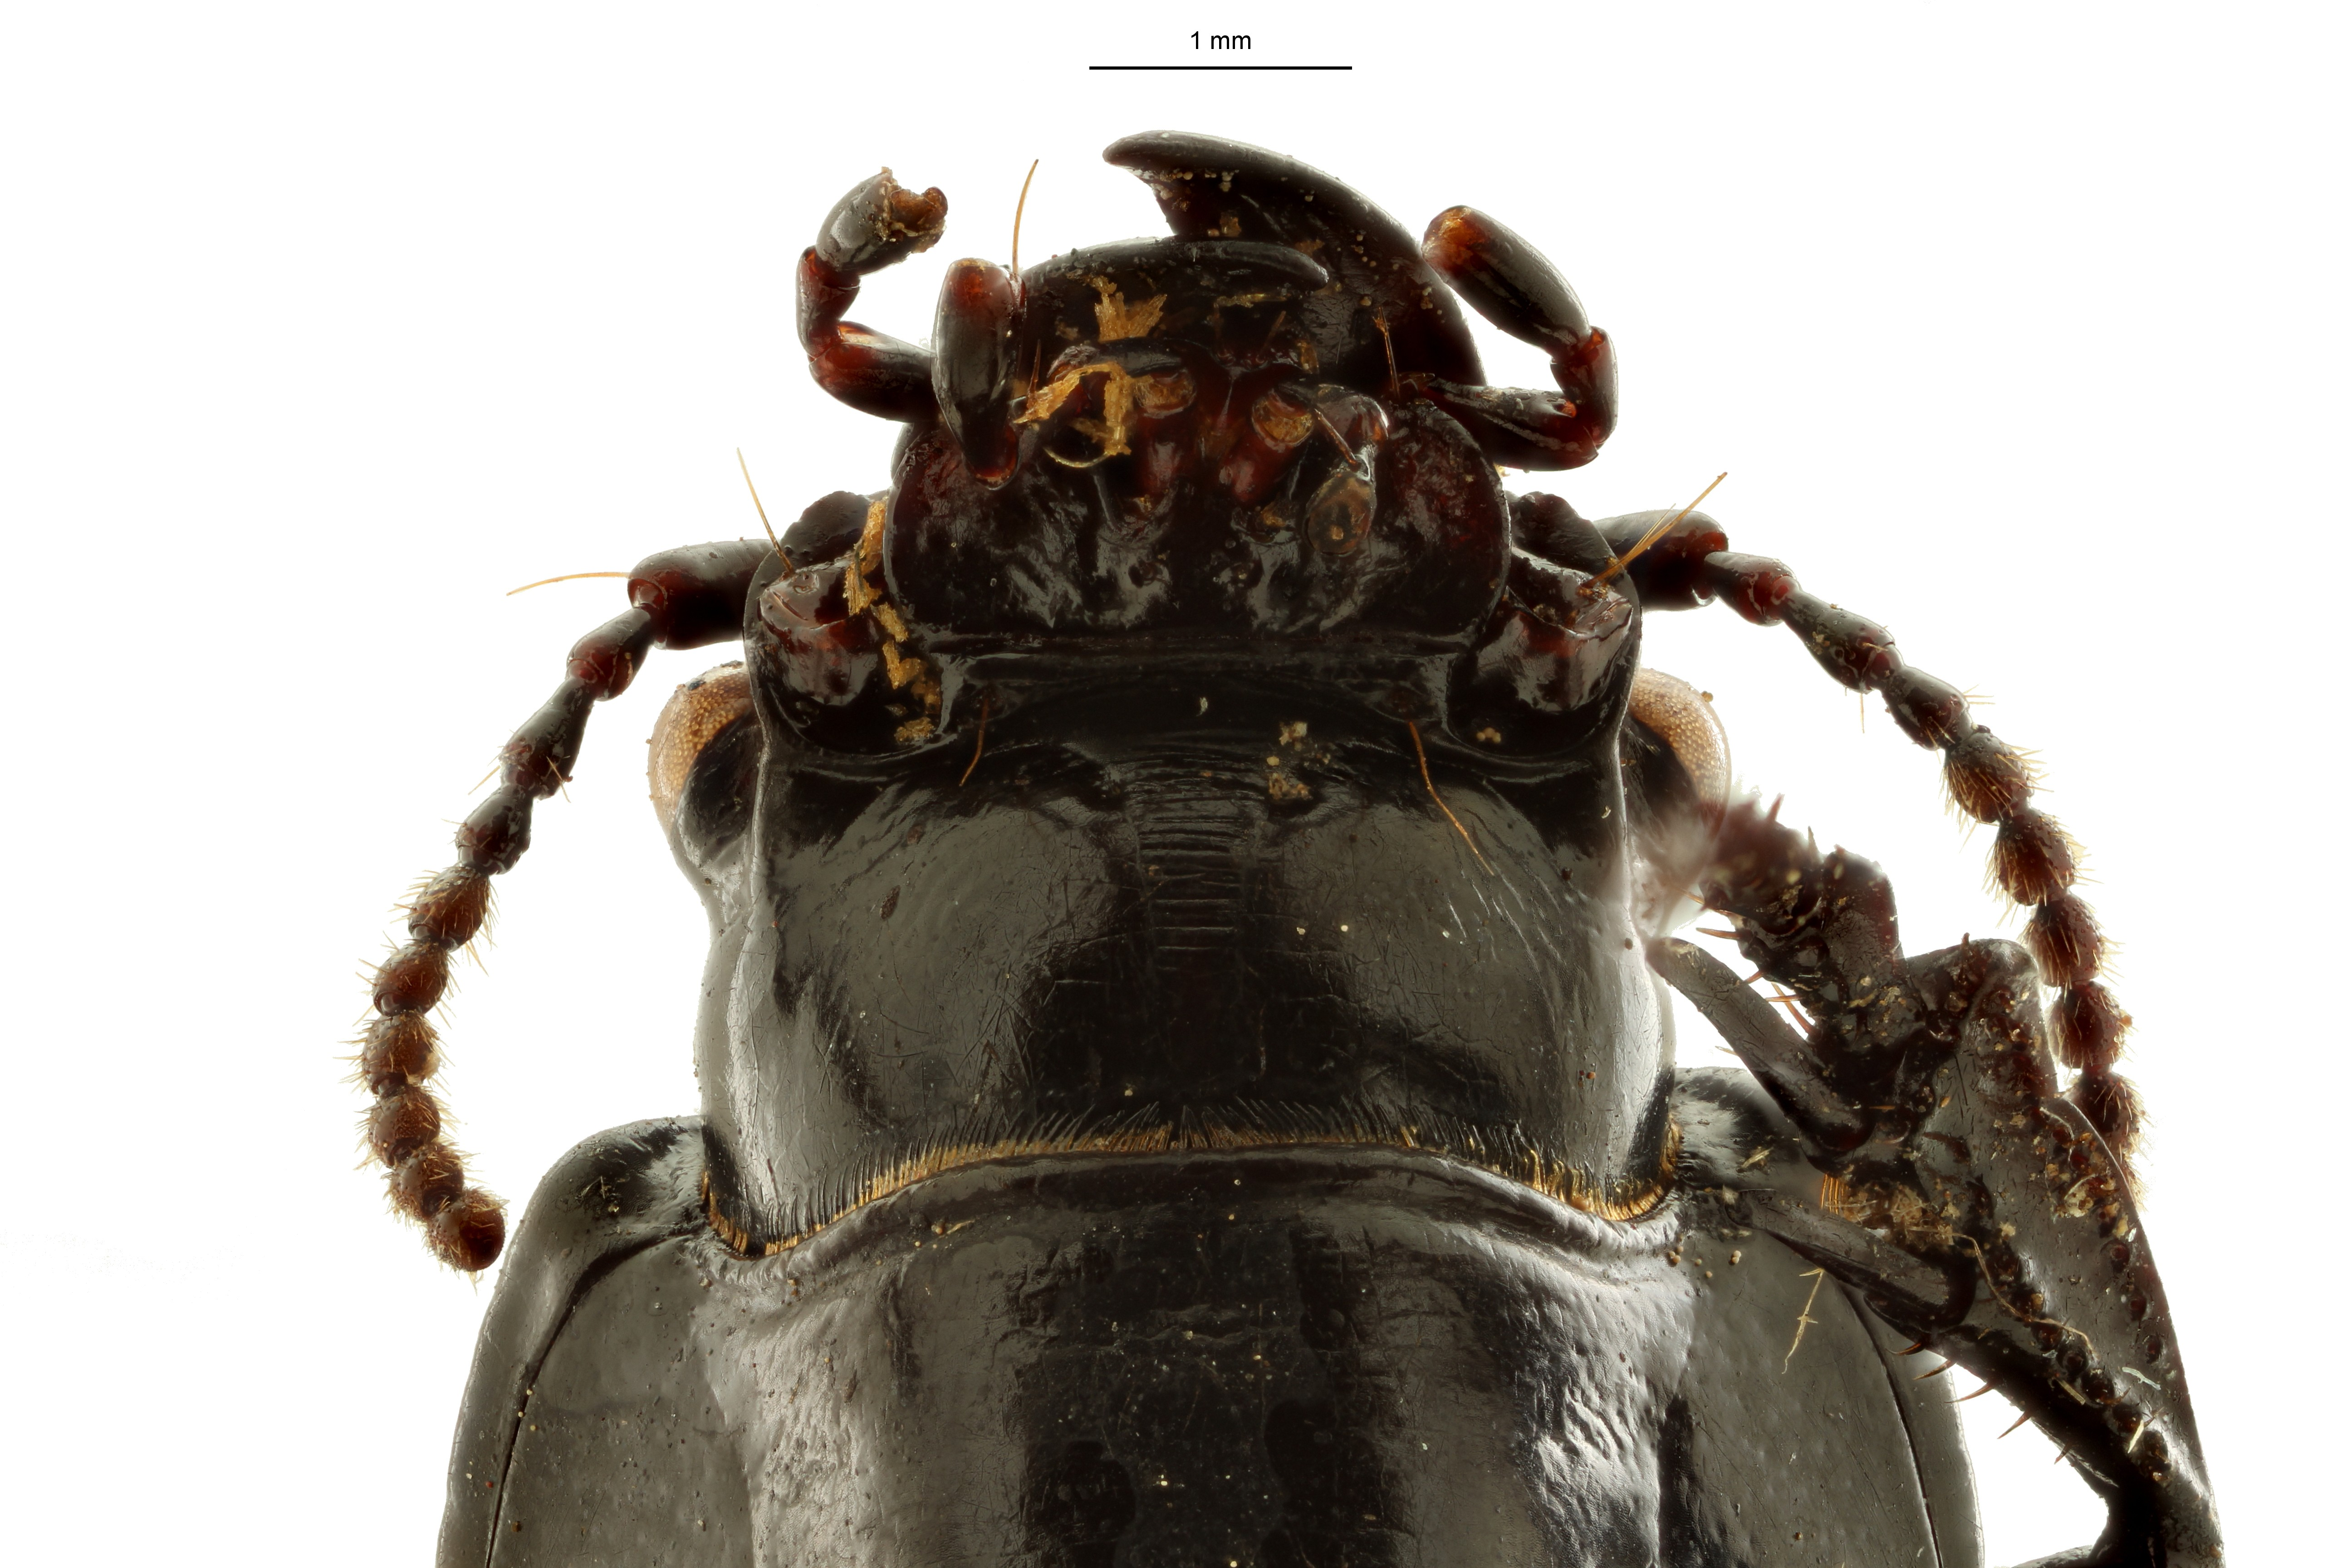 Percosoma asymetricum t VH ZS PMax Scaled.jpeg